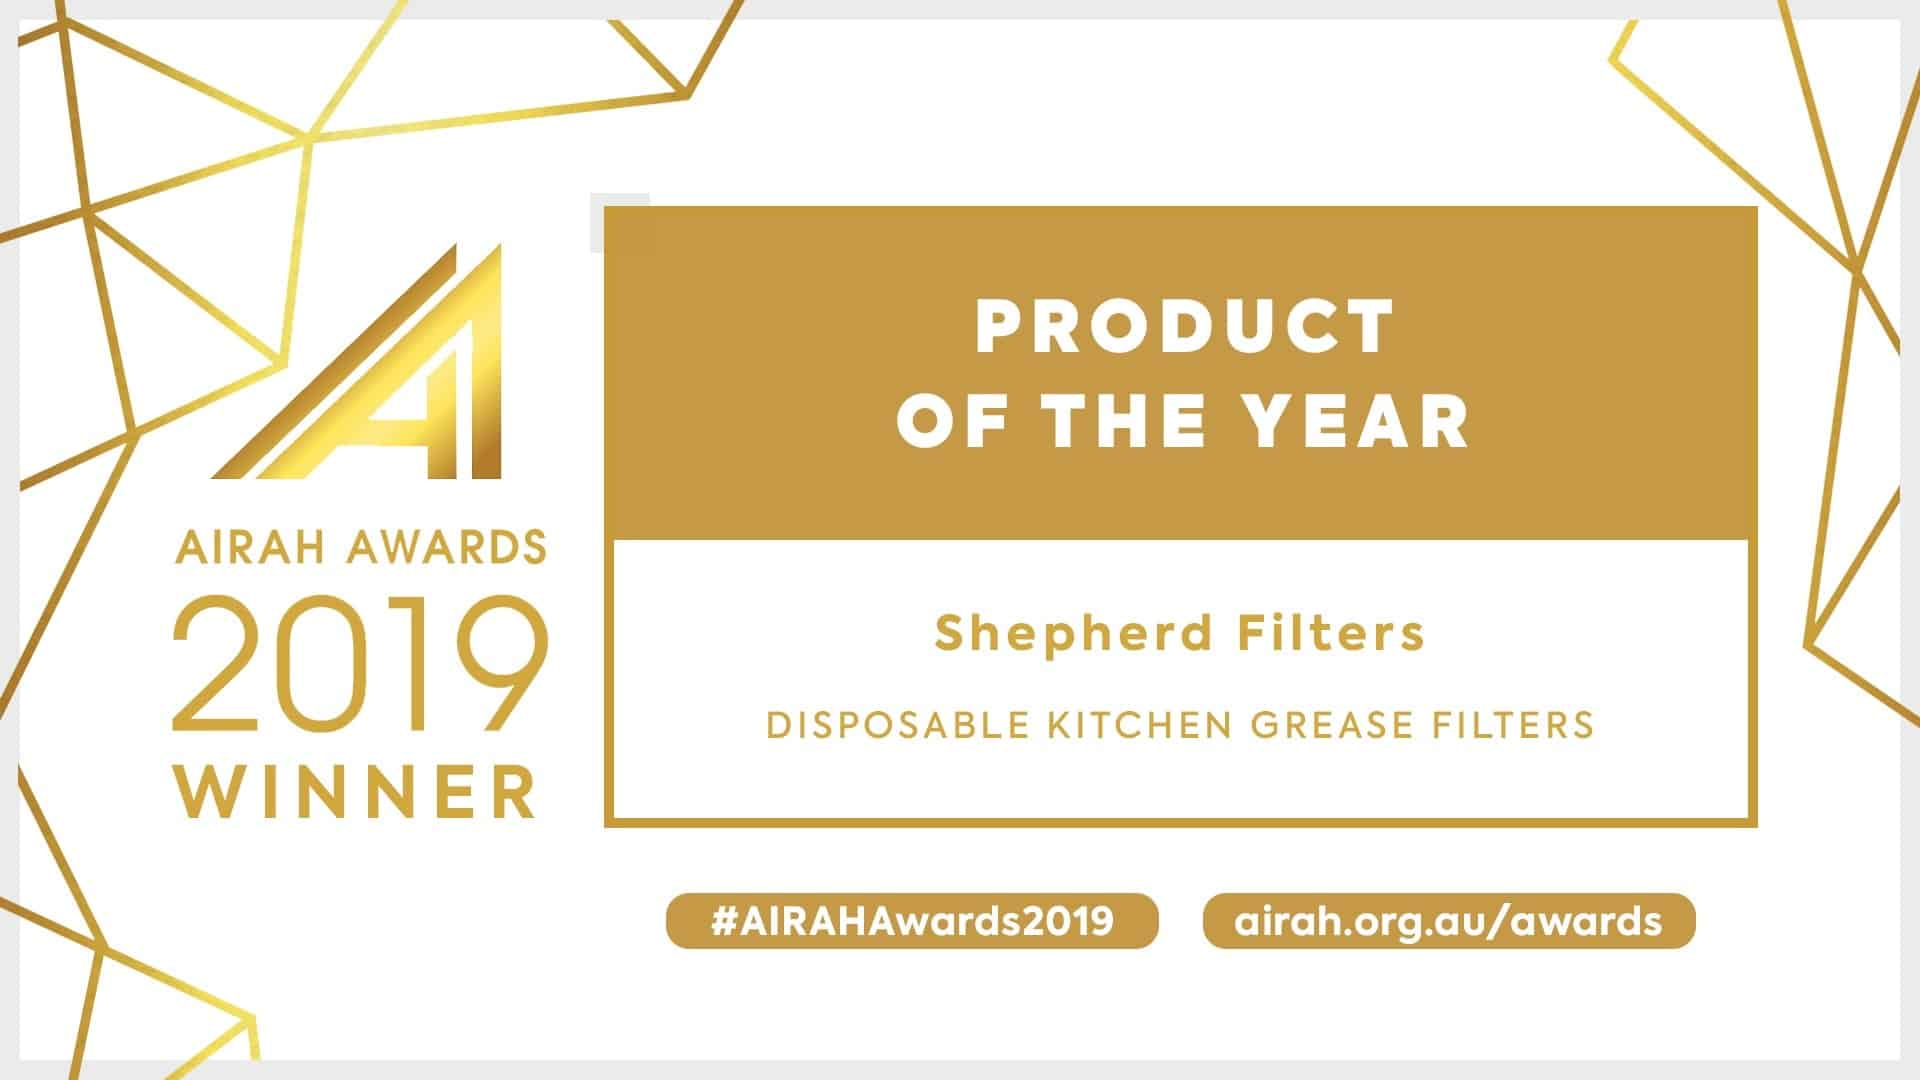 AIRAH Product of the Year Winners 2019 - Shepherd Filters